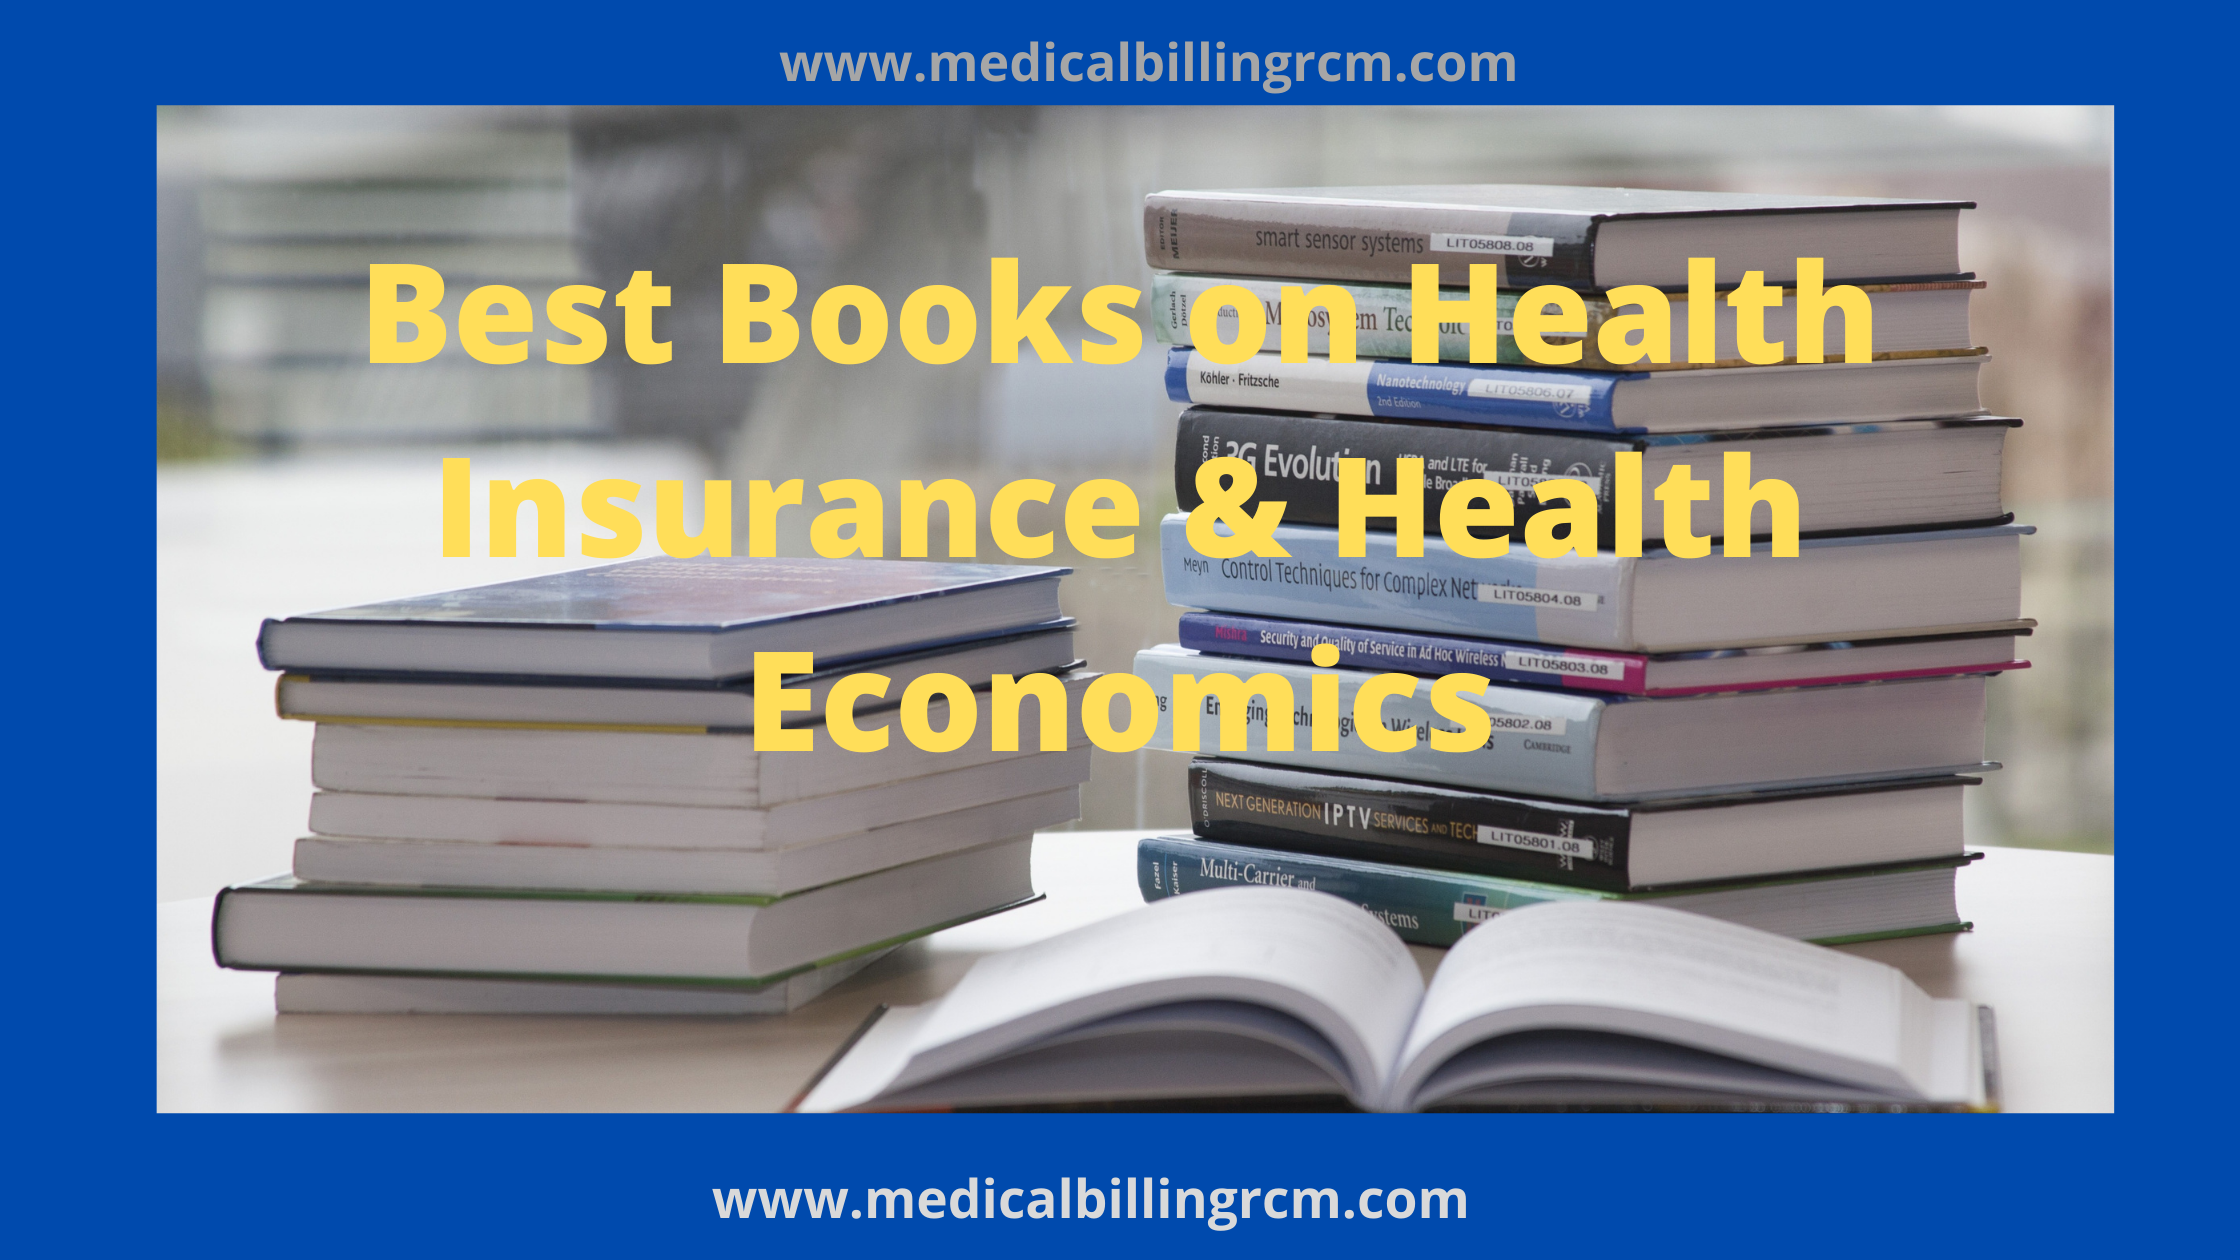 best books on healthcare and insurance